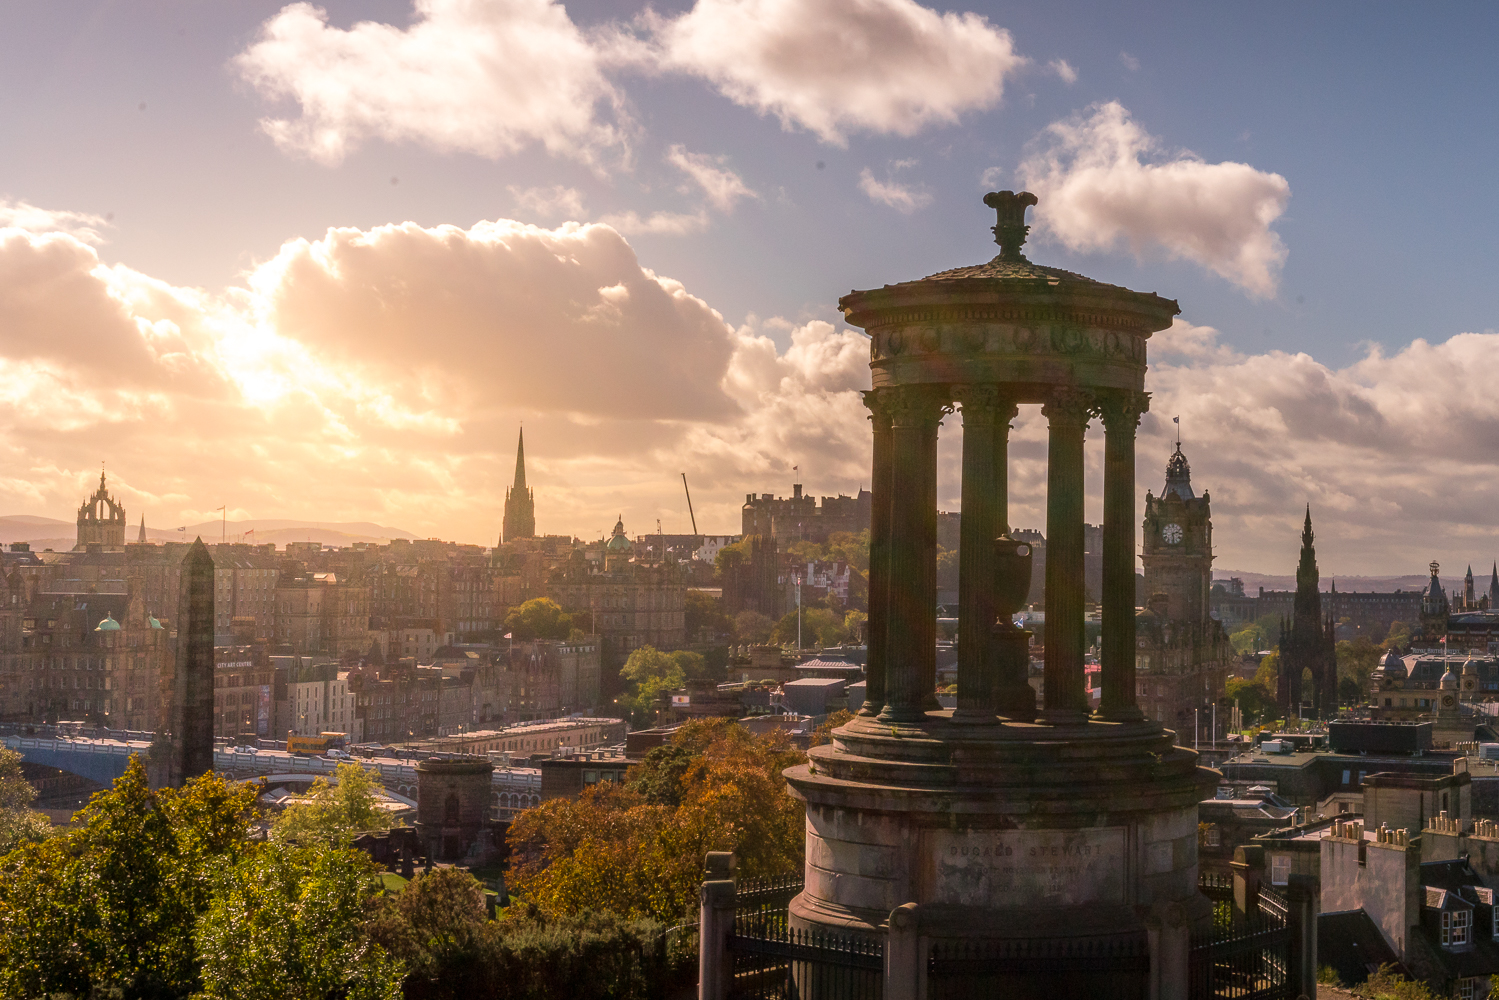 View over Edinburgh in late afternoon sun, with Edinburgh castle in distance.